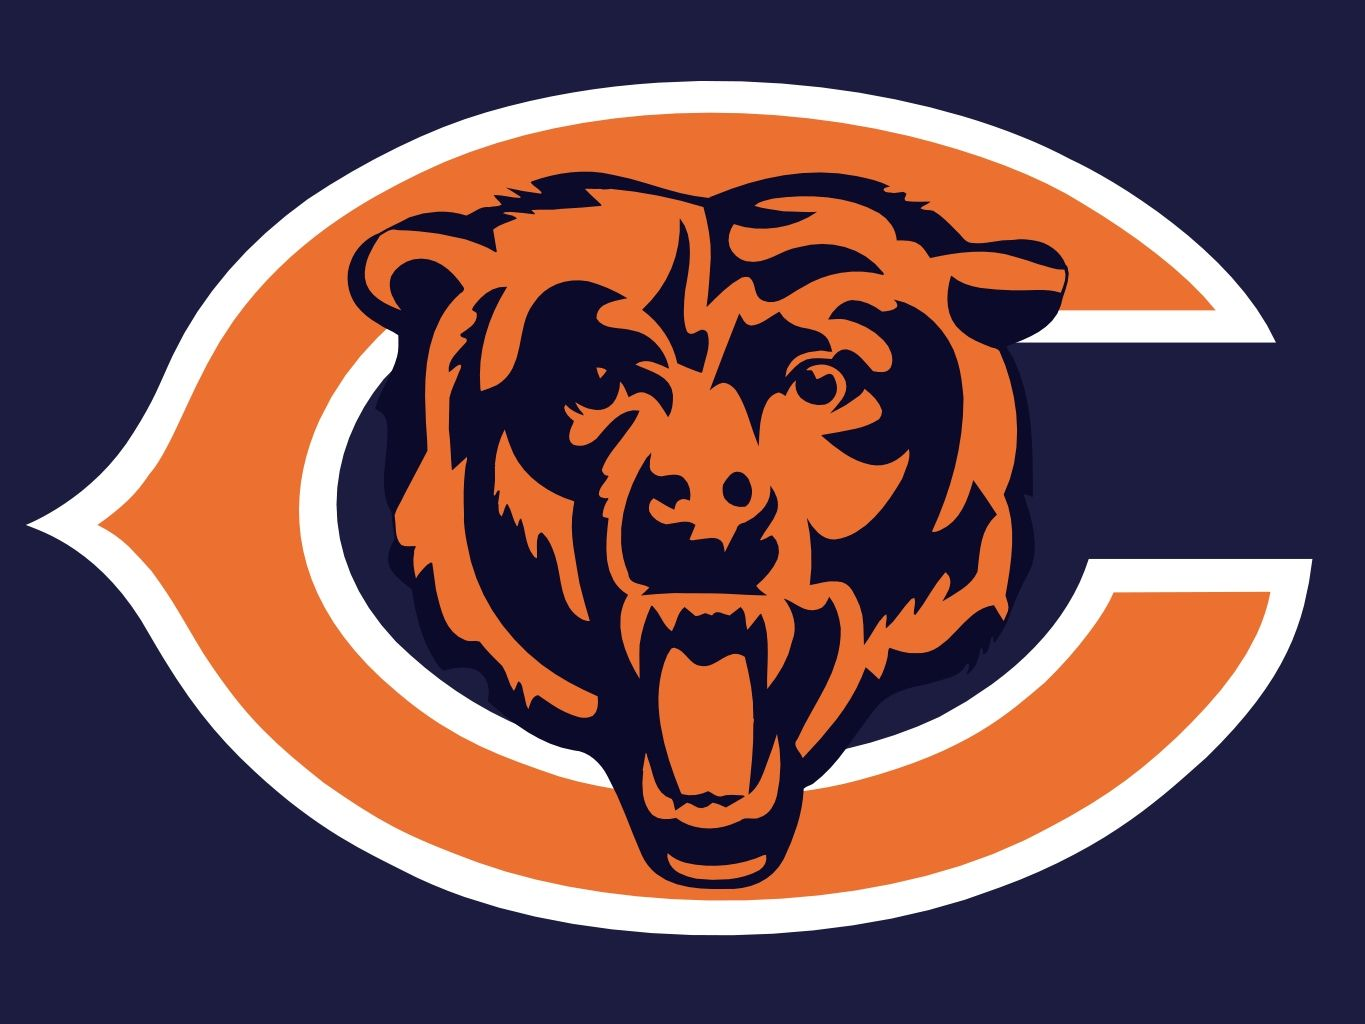 Chicago Bears Wall Art chicago bears http://www.hark/clips/ycfsbtynty-bear-down